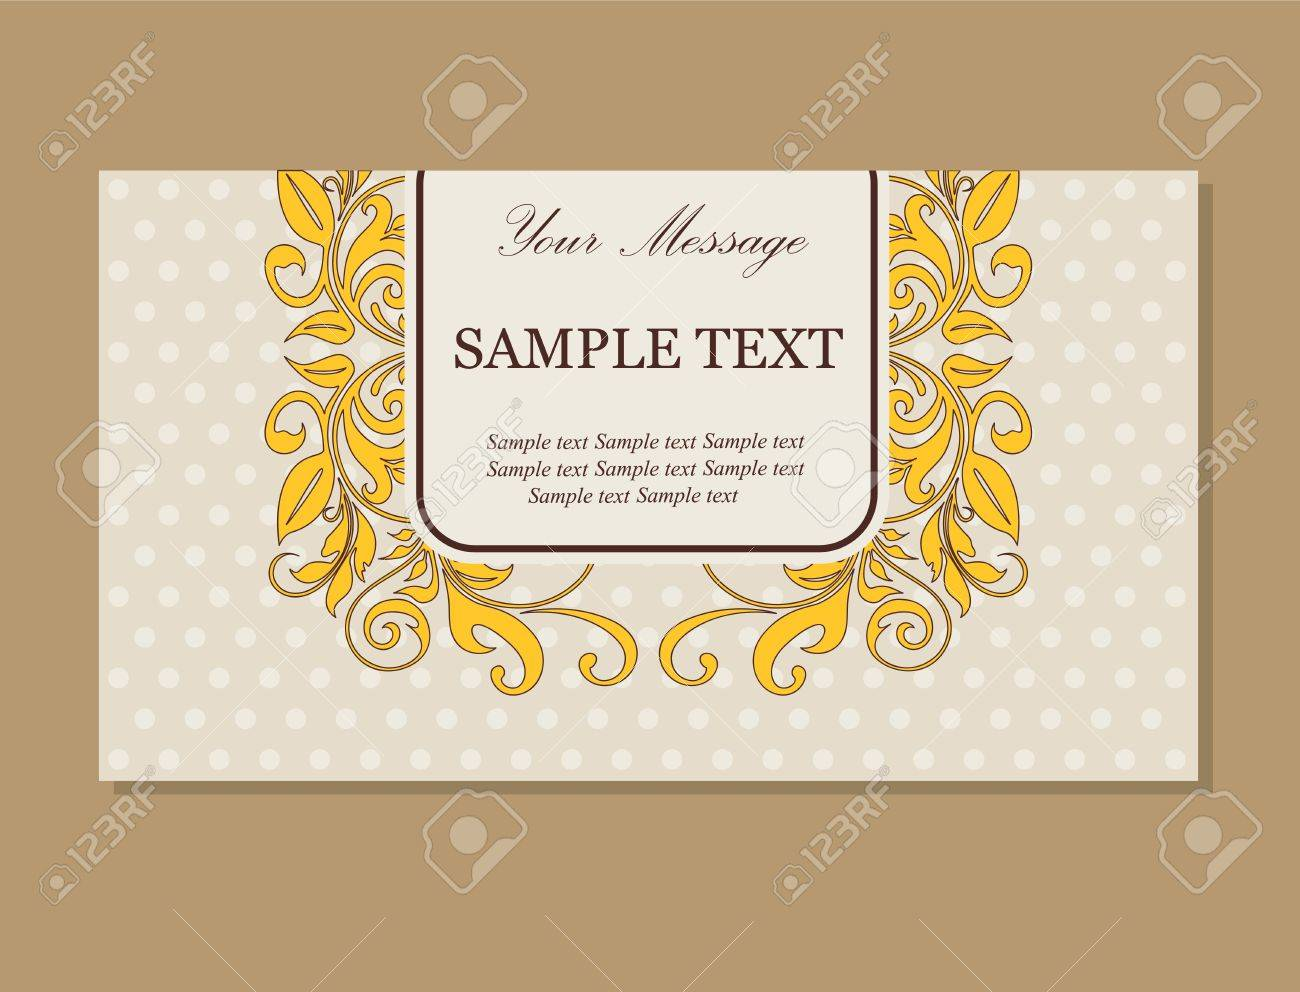 Business Card Invitation Gallery - Free Business Cards